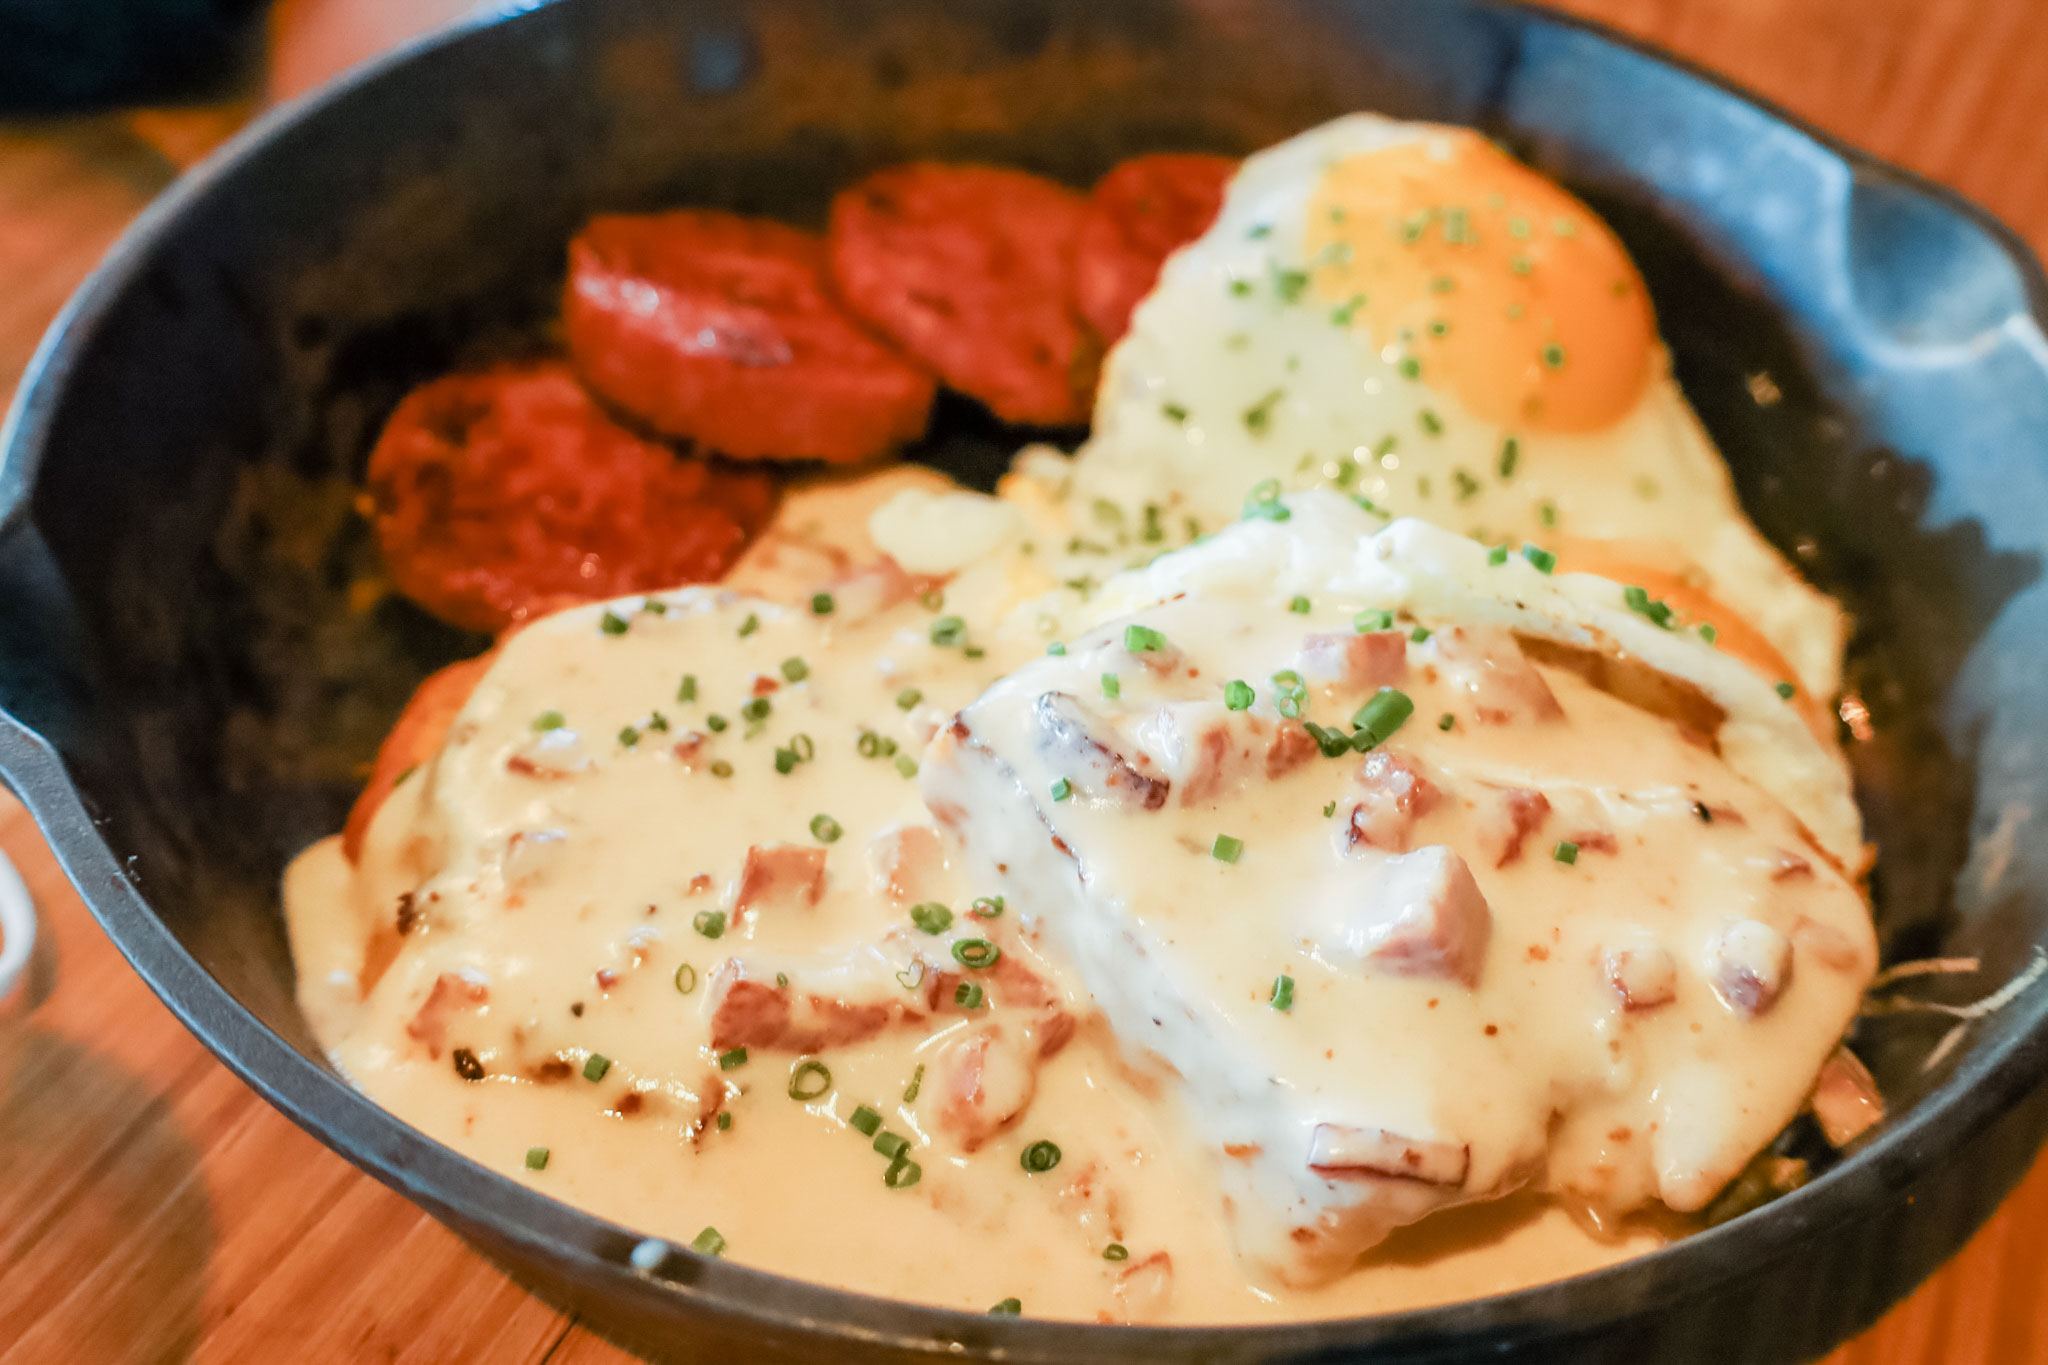 A dark bowl filled with biscuits and gravy.